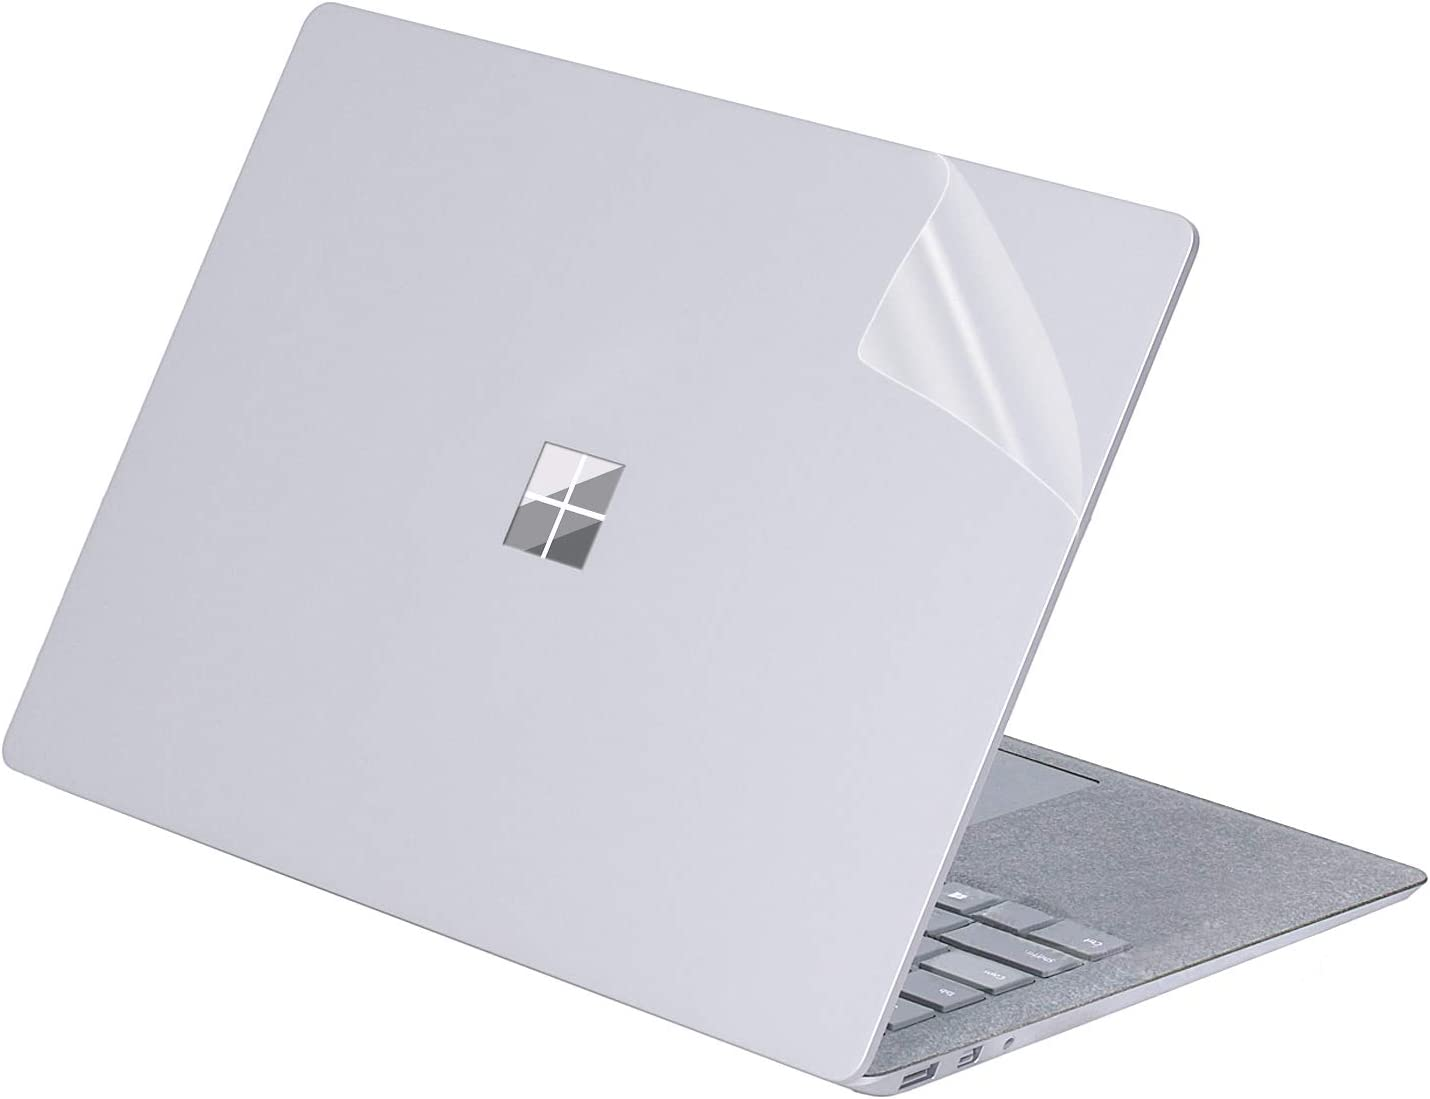 "MasiBloom Transparent Decal Sticker for 13 inch Microsoft Surface Laptop 3 & 2 & 1 (2019 18 17 Released) 13.5 inch Anti-Scratch Vinyl Protective Skin (for 13.5"" Surface Laptop 3/2/1, Transparent)"